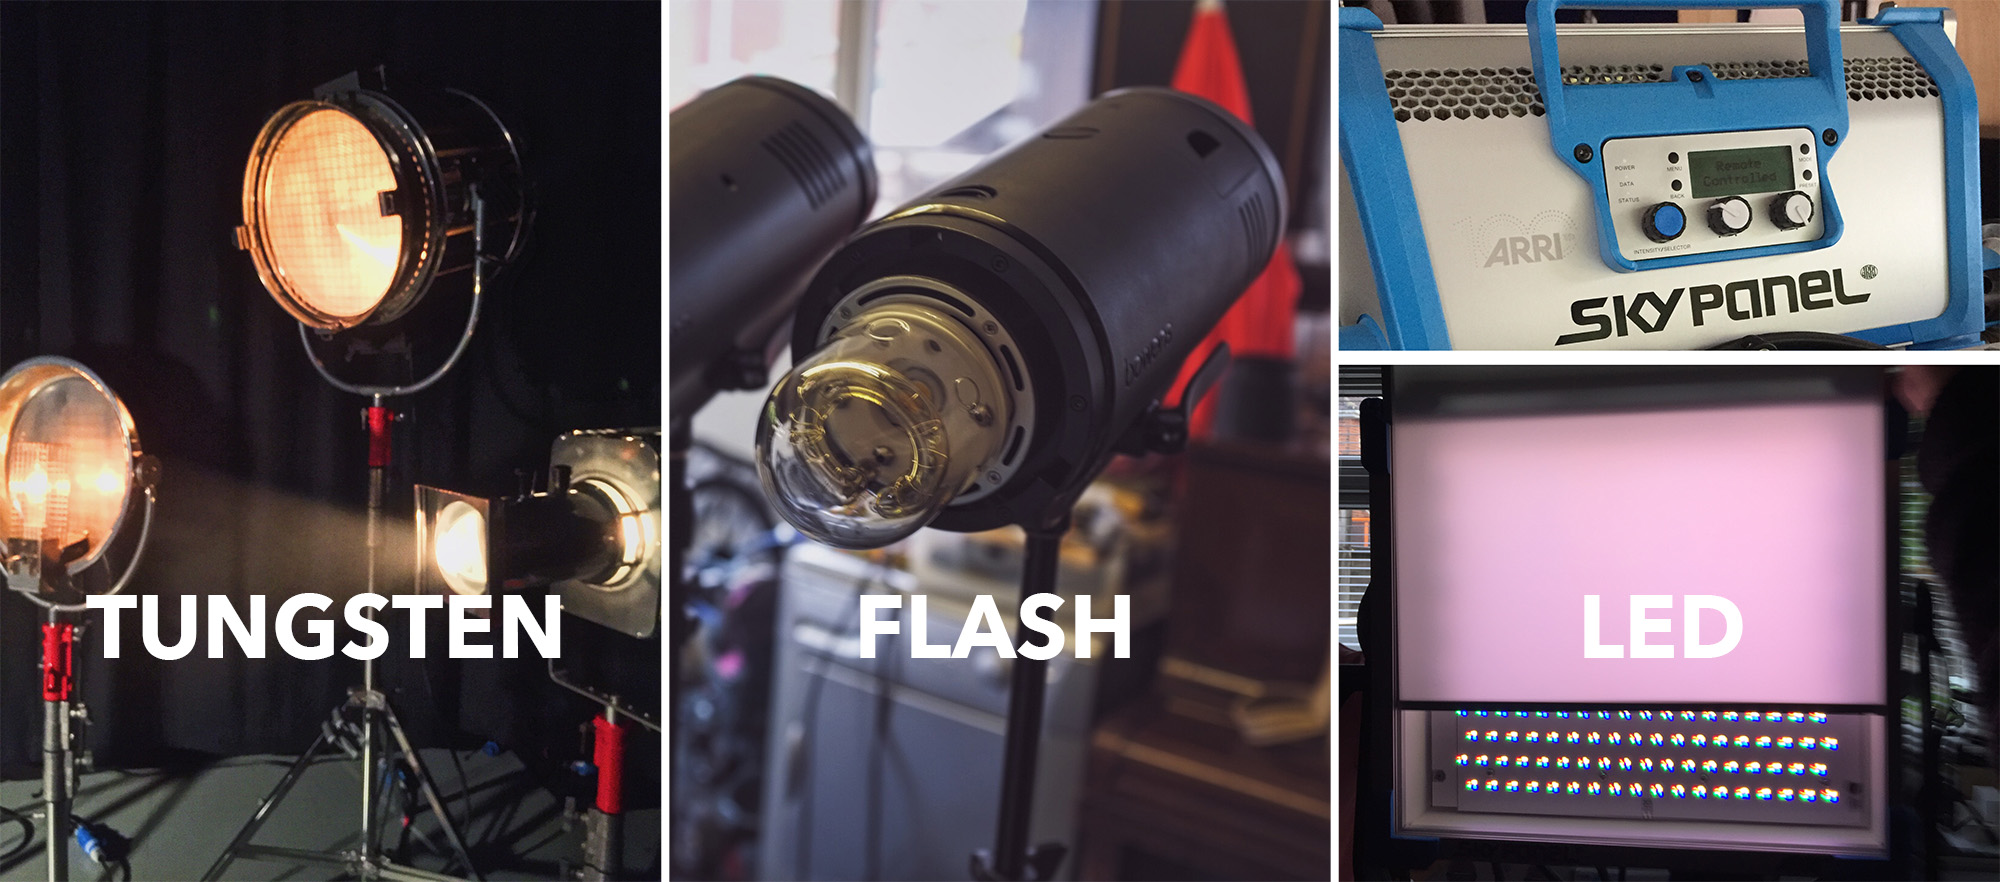 We already use flash and tungsten, do we really need to consider LED lights too?